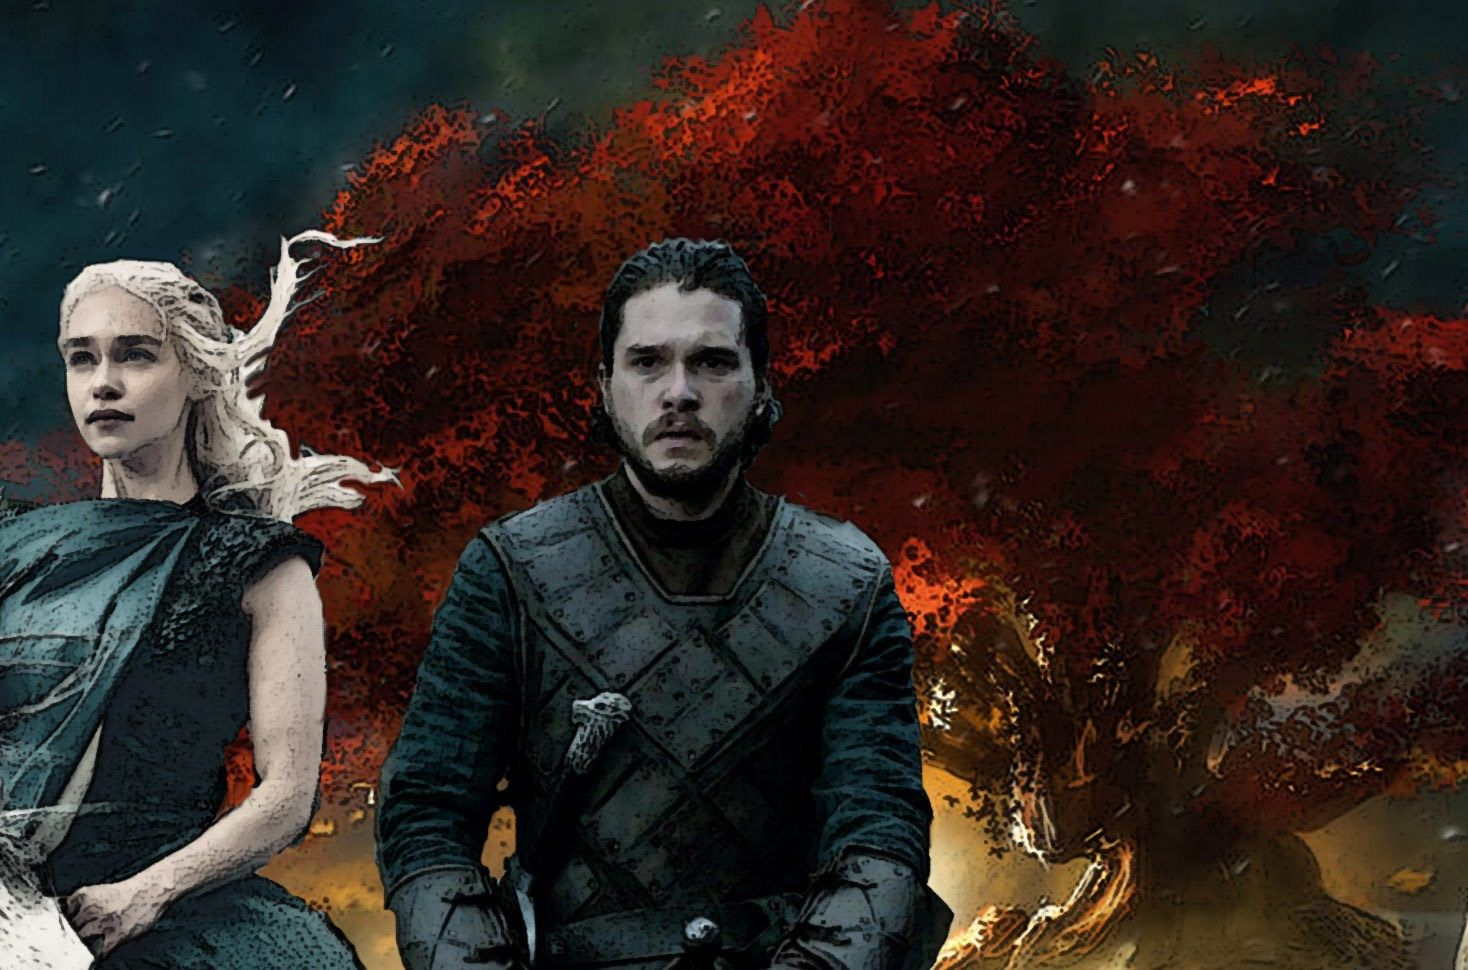 Pin by Jayson Santos on Game Of Thrones News Recap | Game of